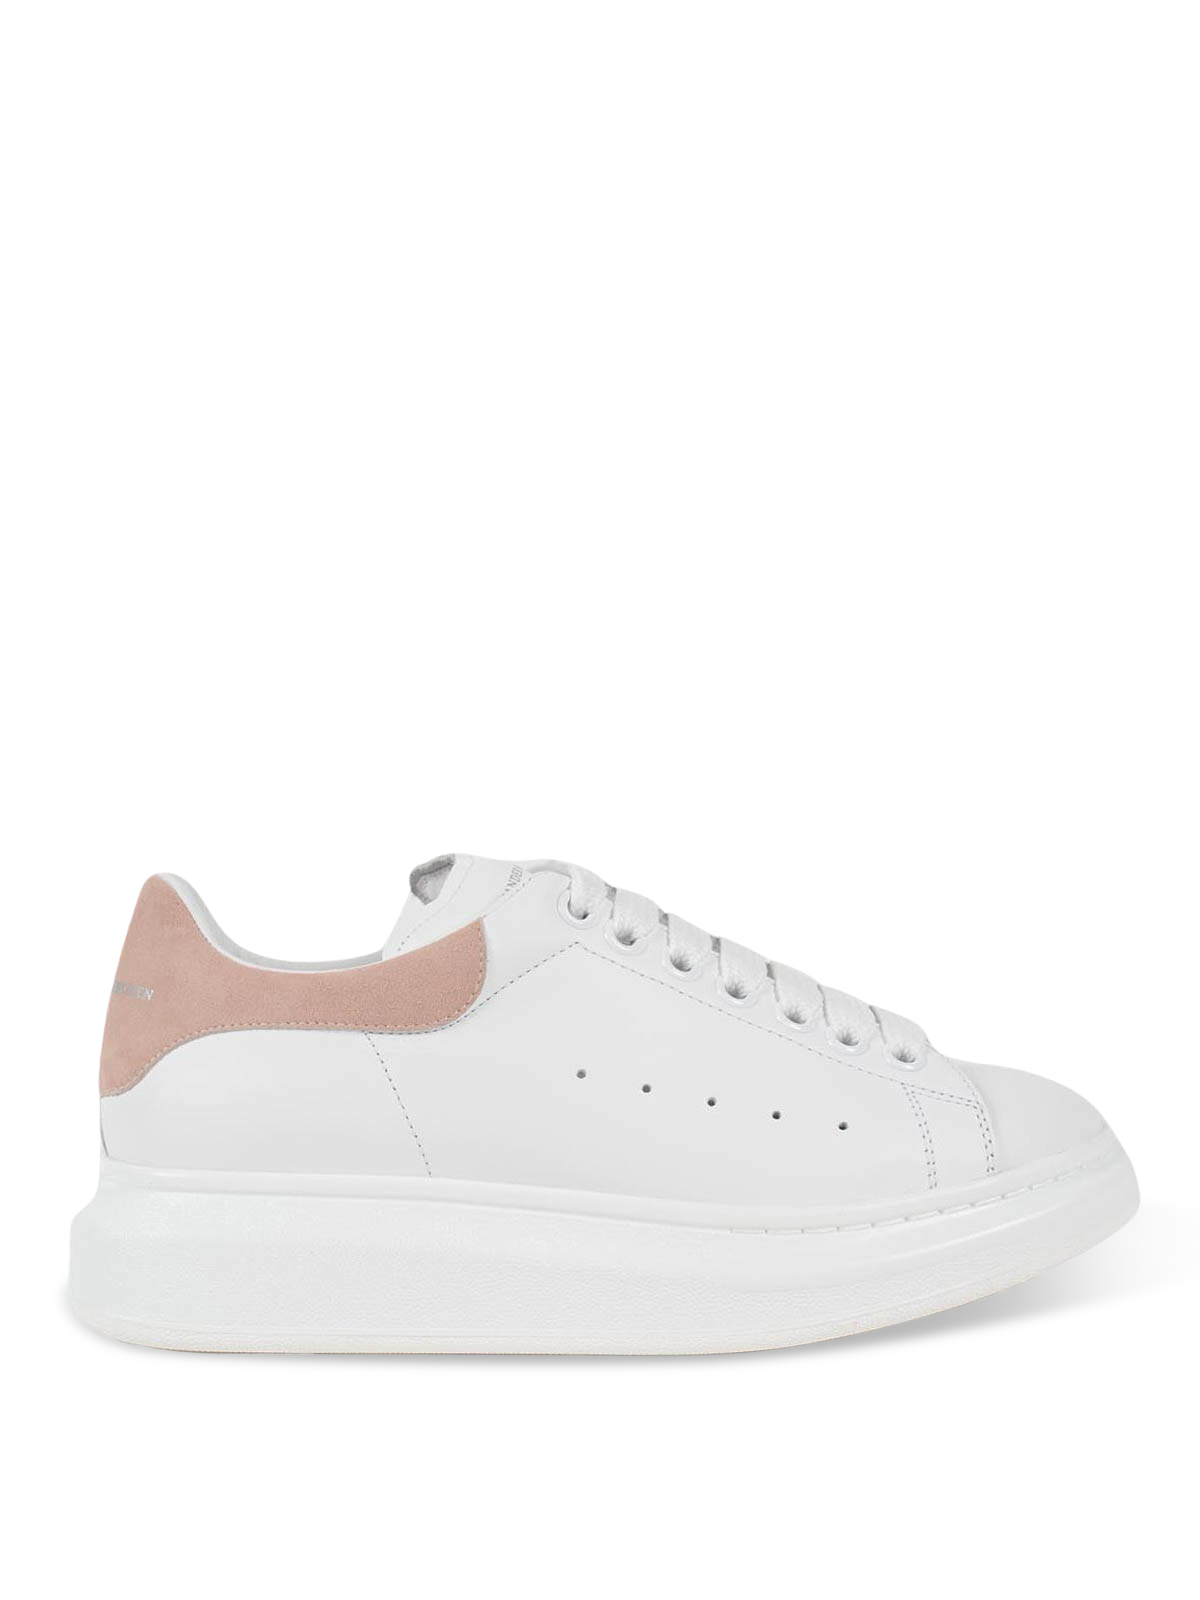 Pre-owned - LEATHER TRAINERS Alexander McQueen 7K36N